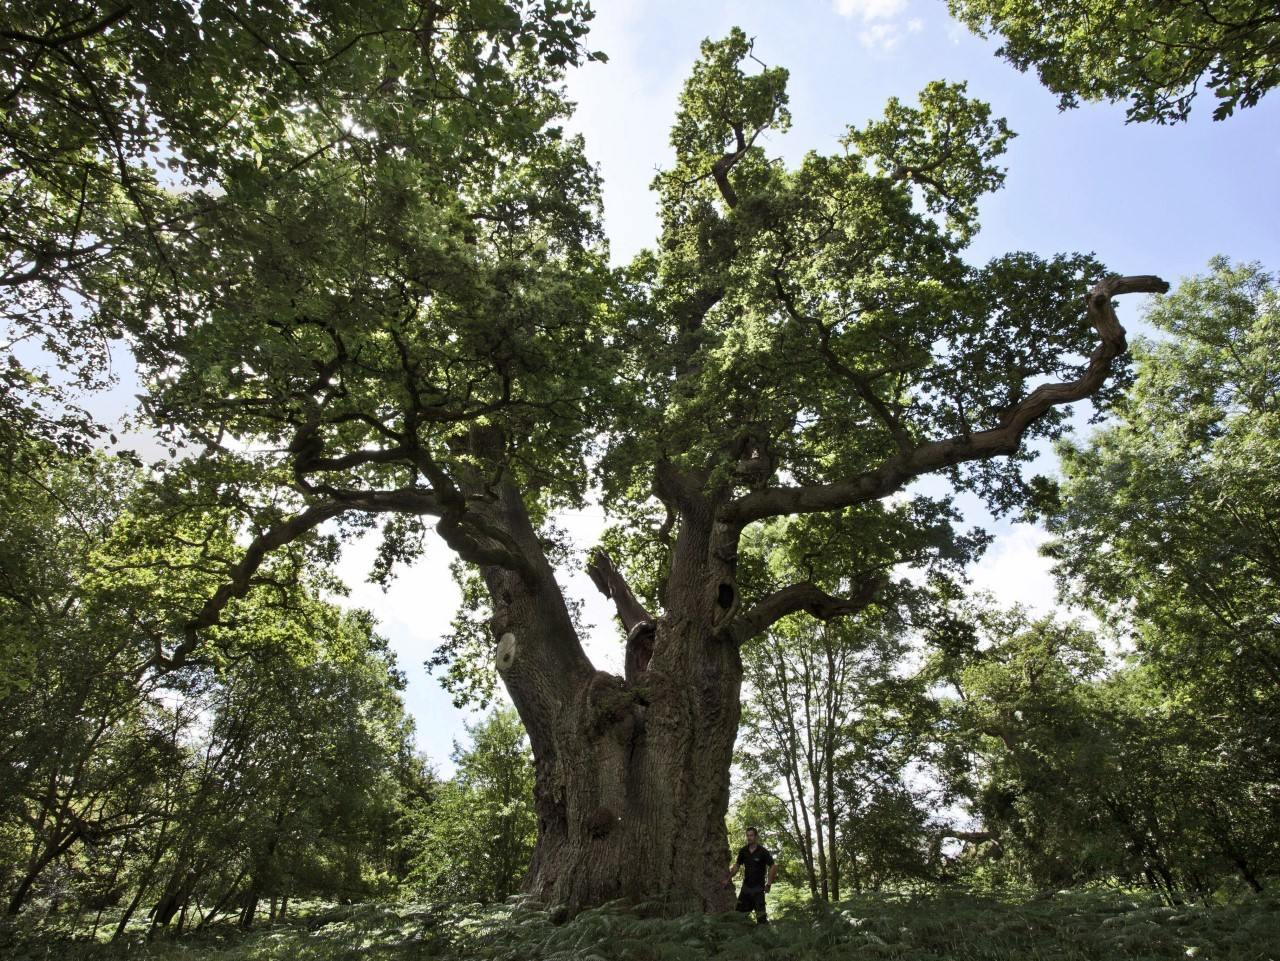 King oak being surveyed © Blenheim Palace.